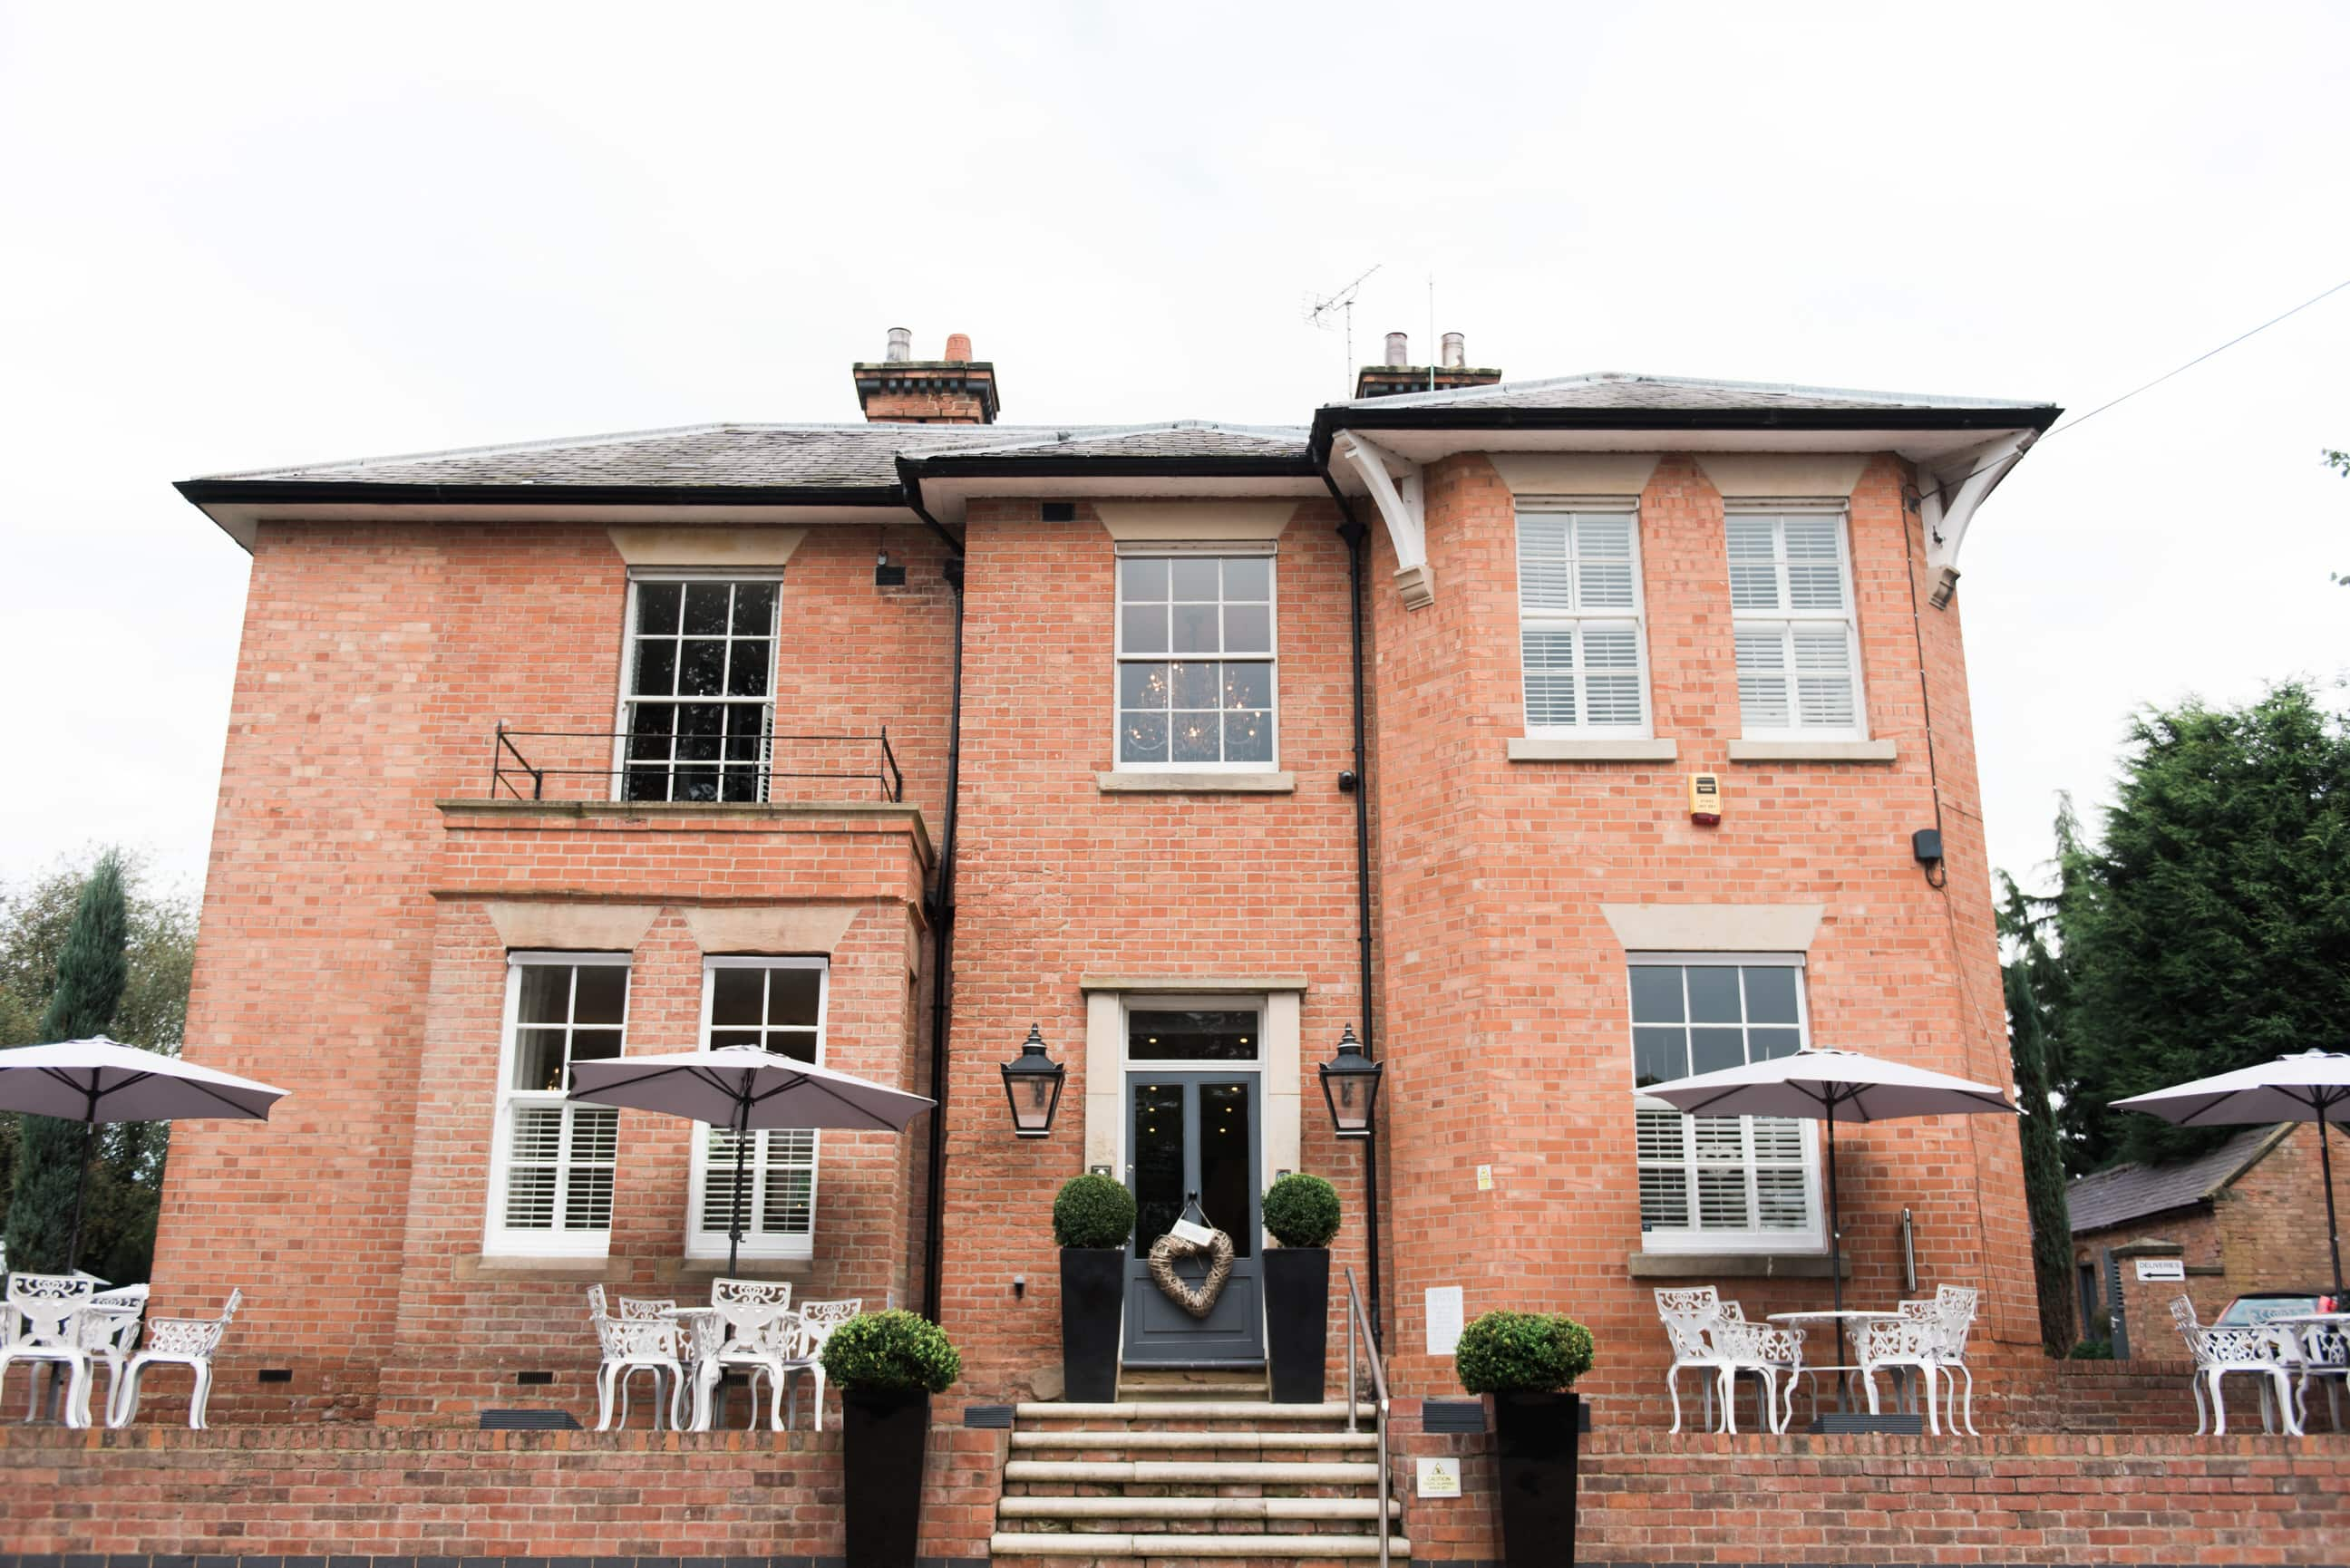 The old vicarage boutique hotel in Southwell